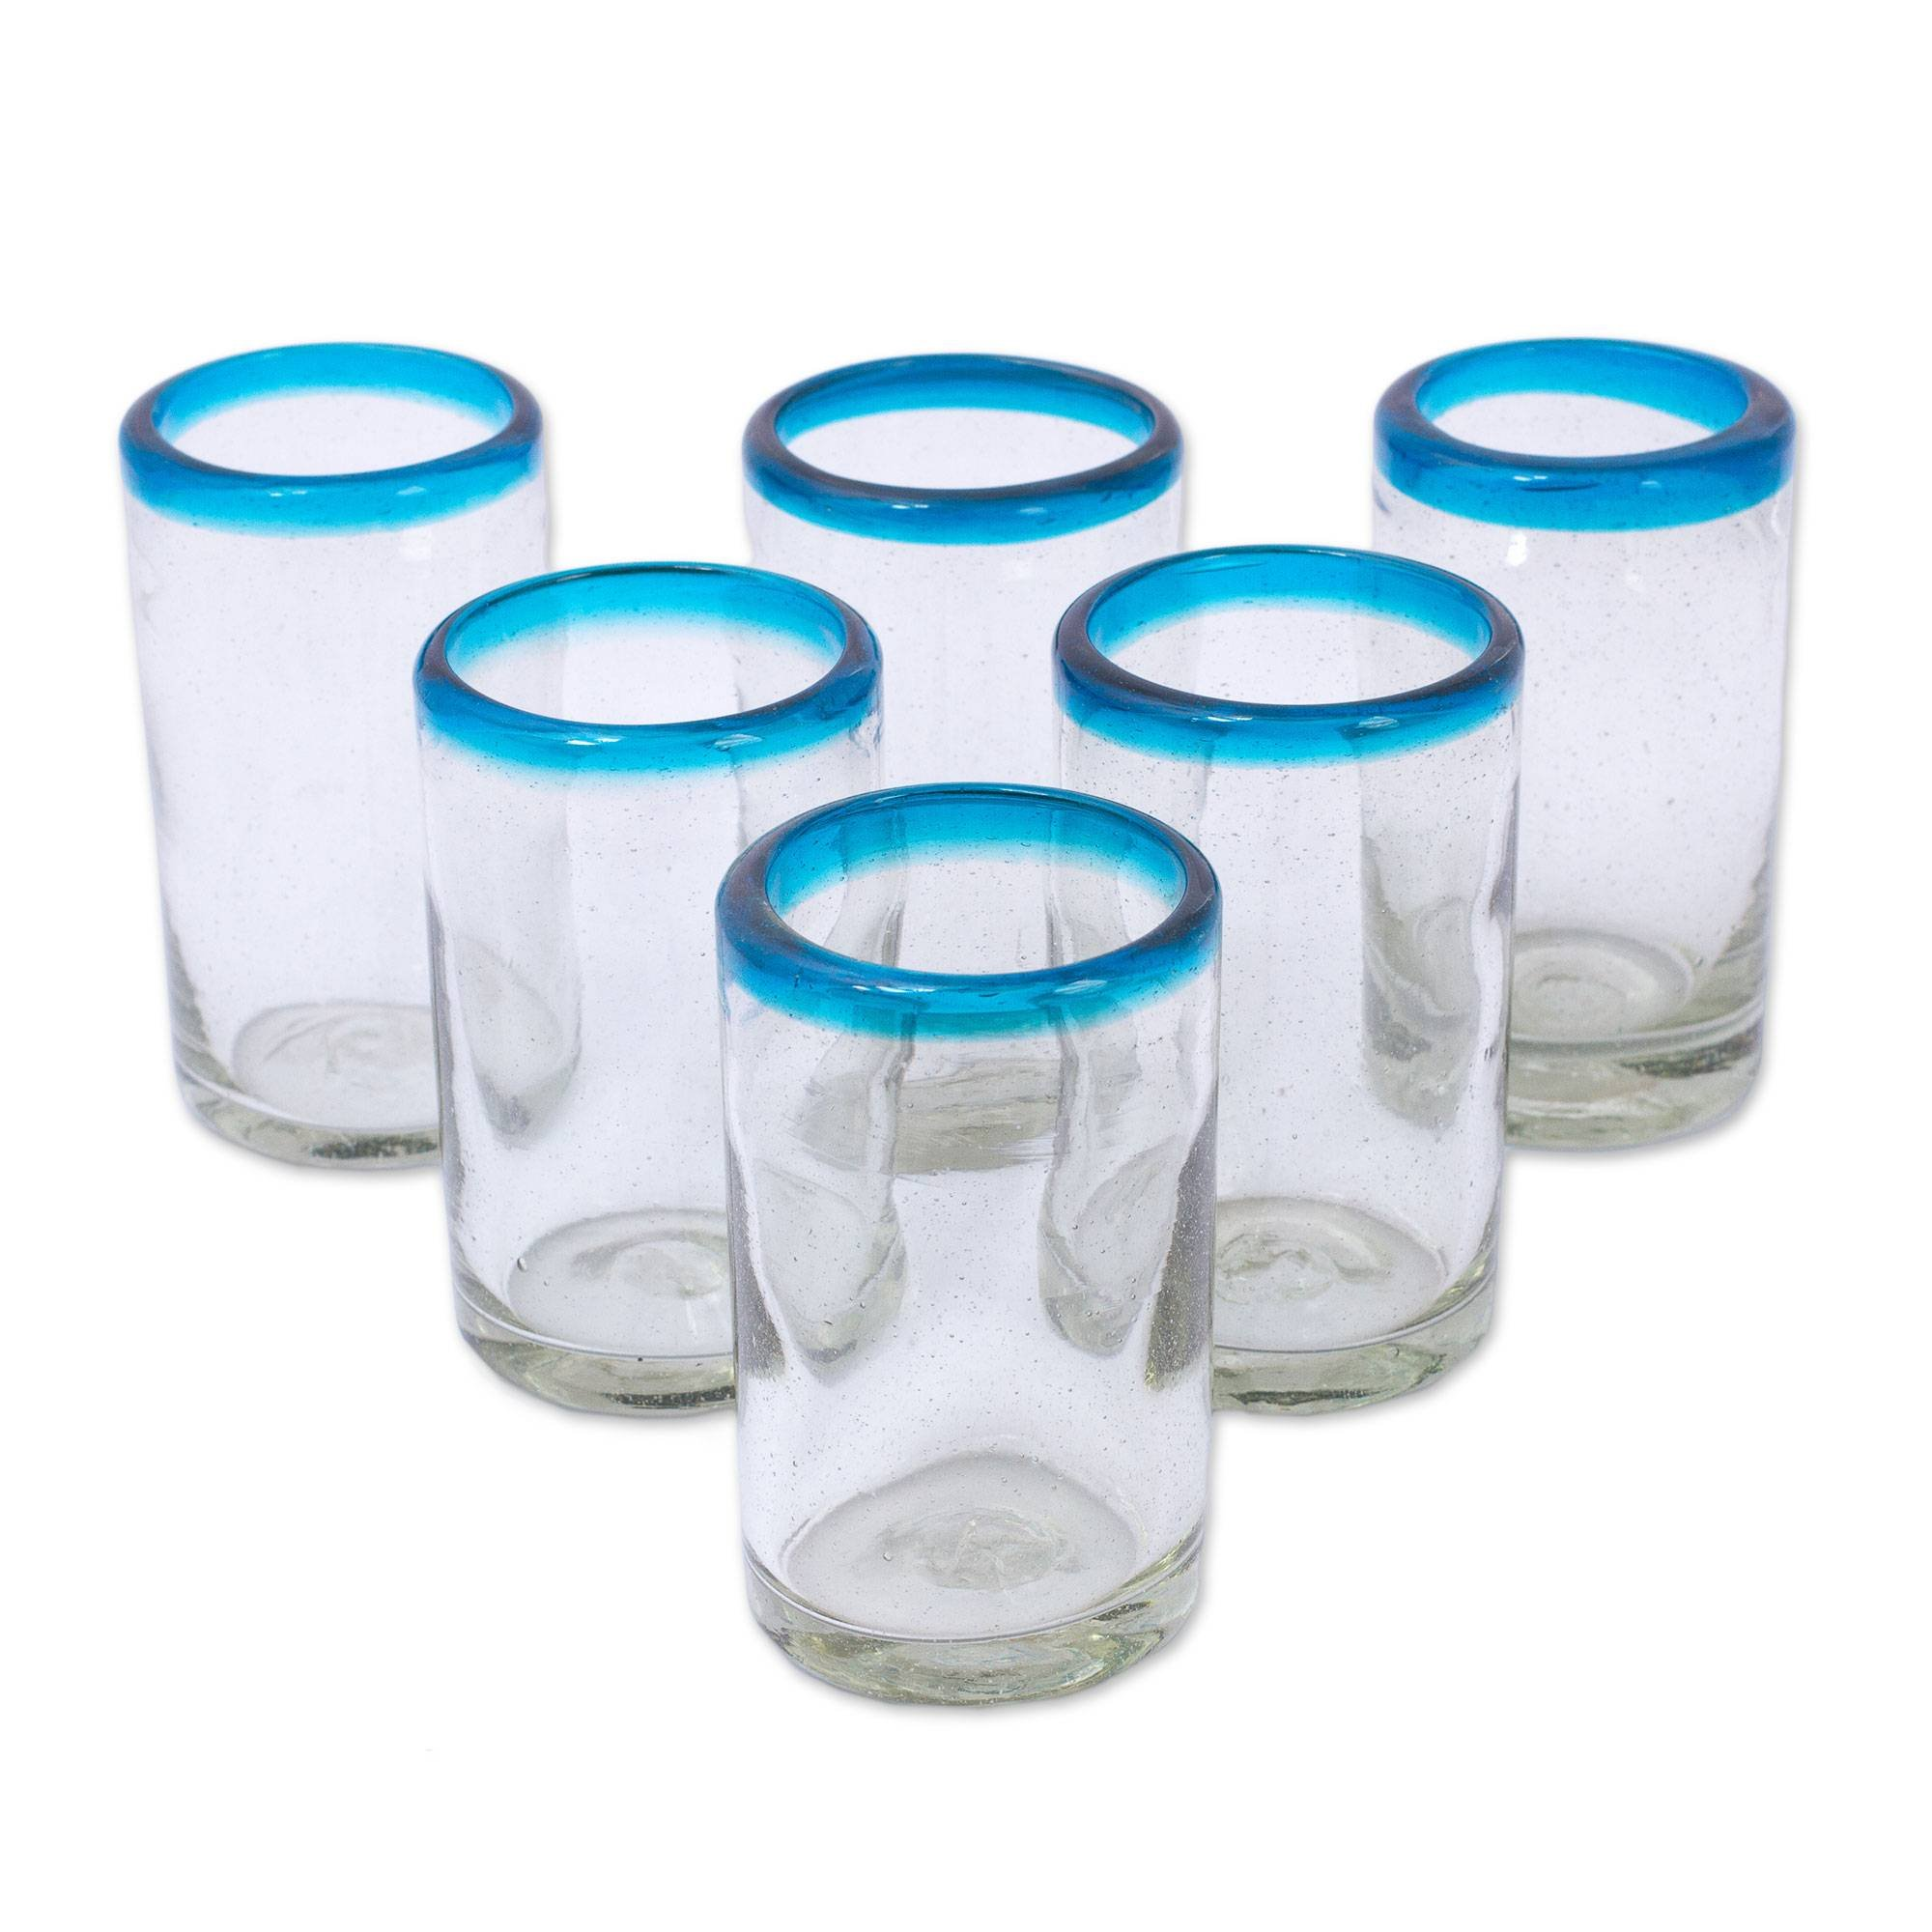 NOVICA 'Sky Blue Halos' Hand Blown Glass Tumblers, 8 Ounces, Clear with Turquoise Blue Rim (Set of 6)